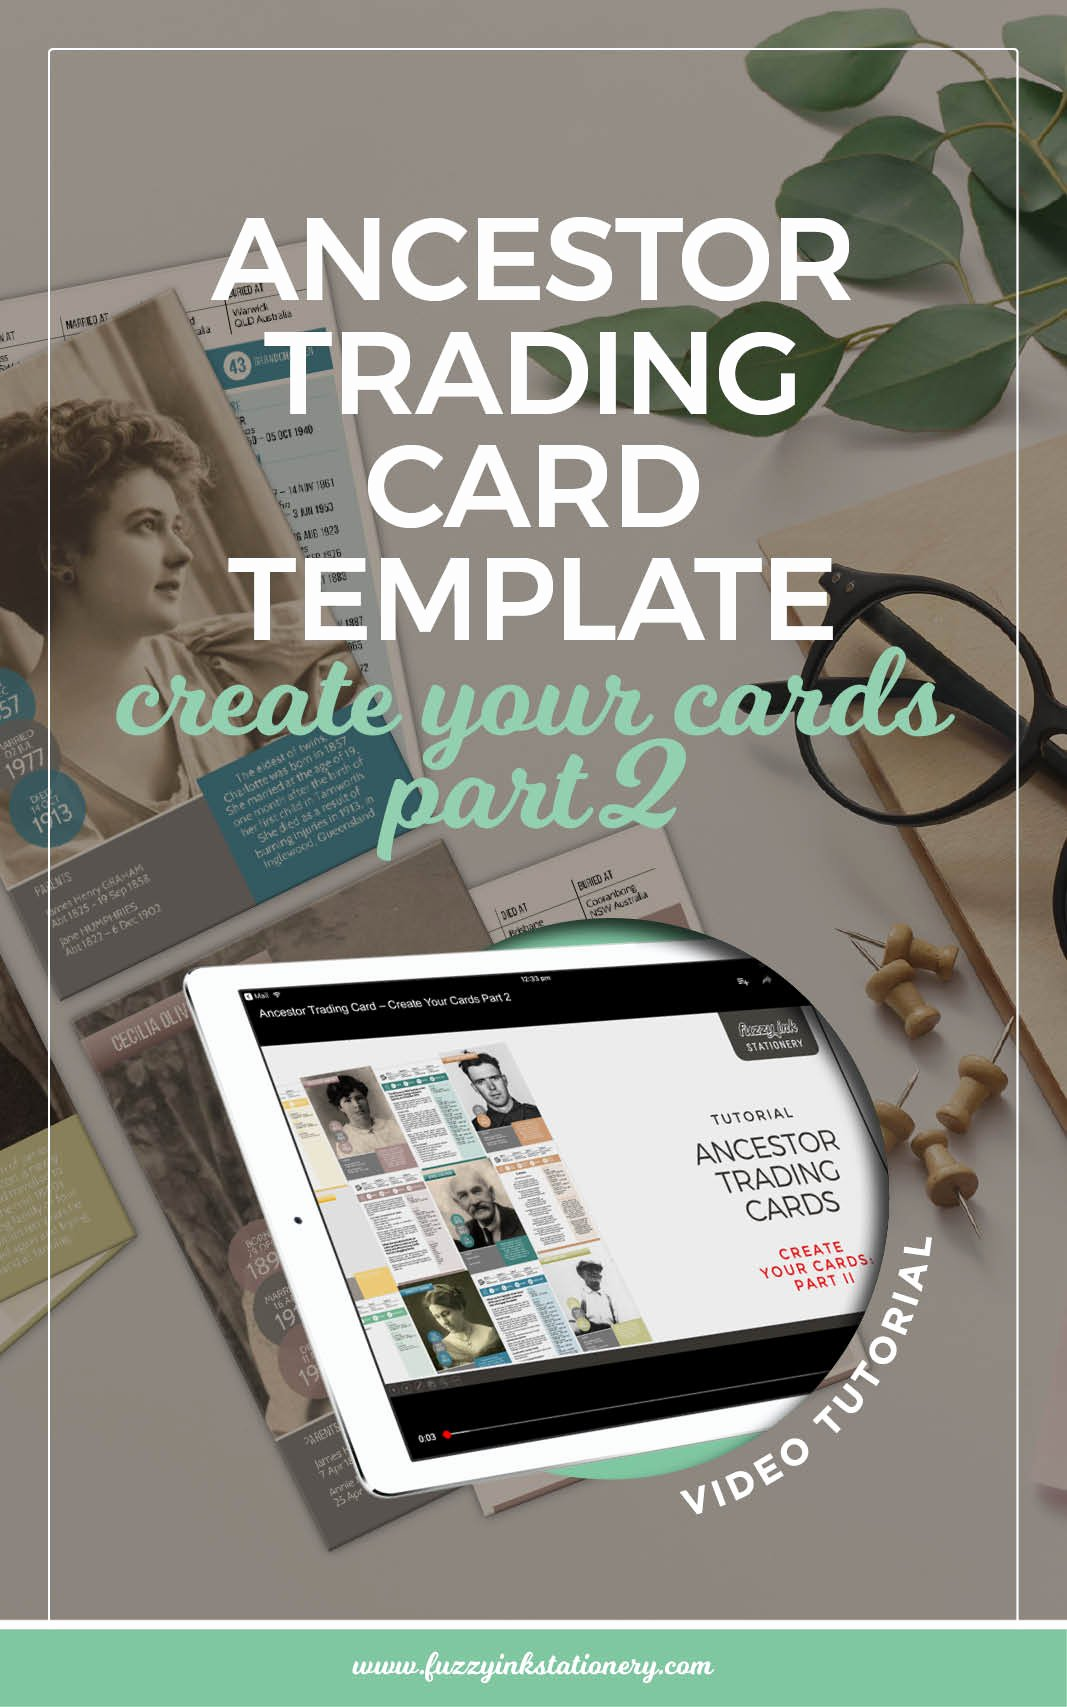 Trading Card Template Word Beautiful Ancestor Trading Card Template Create Your Cards Part 2